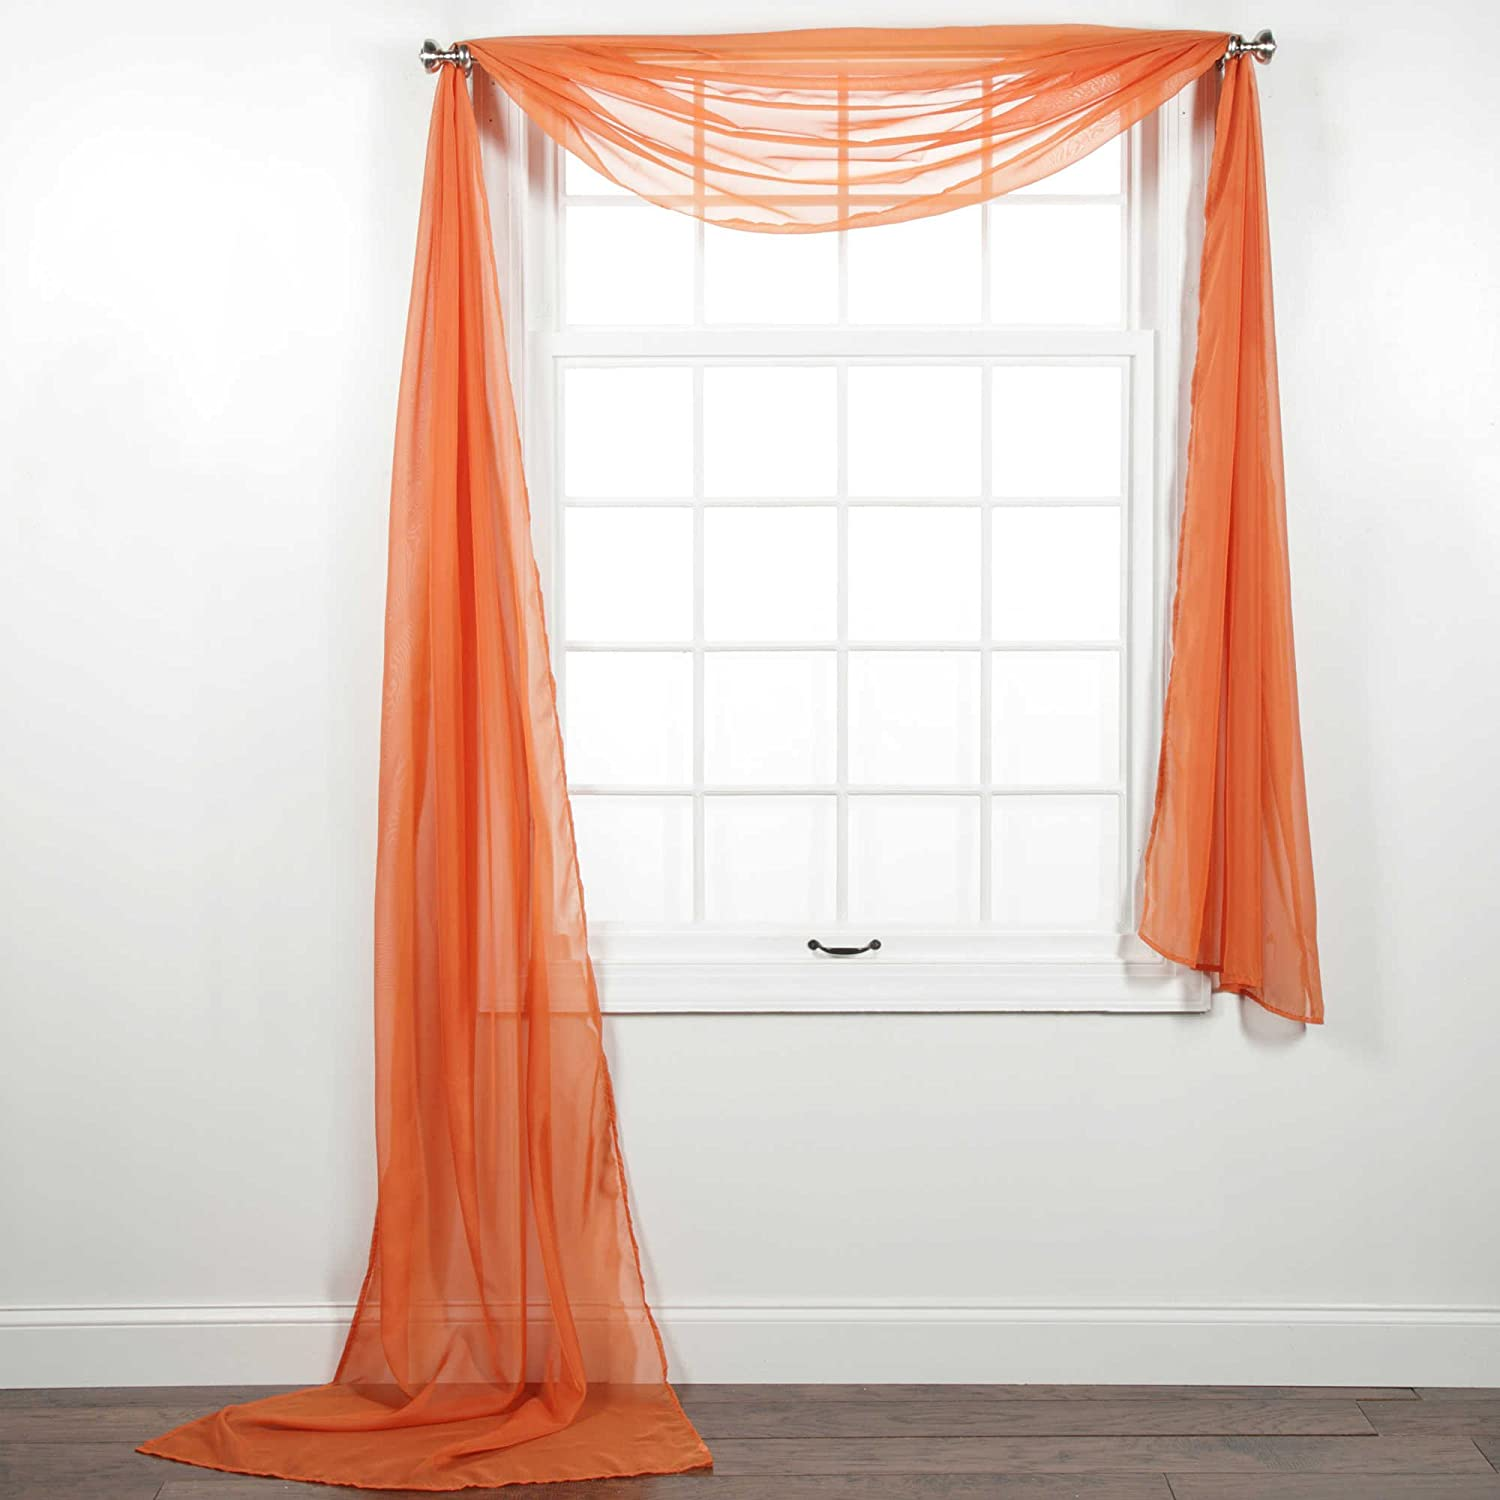 Crawfish 2pc Voile Sheer Curtain Panel Set Rod Pocket Solid Stitched Hemmed Living Room Window Treatment Panels Assorted Decorative Wedding Valance Scarf Scarves Ceremony Colors and Sizes